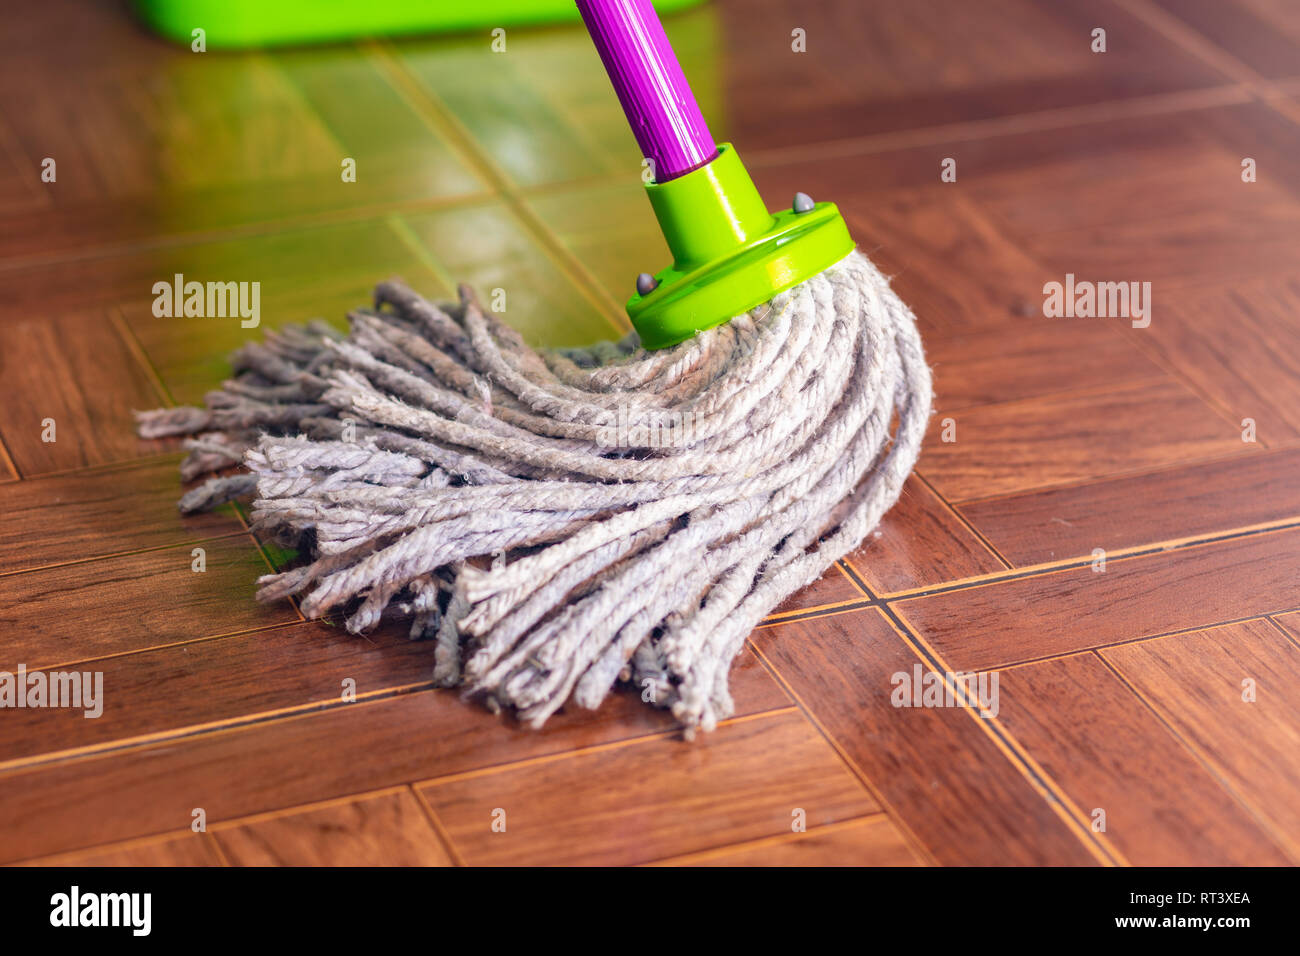 Rope mop wipes the floor of the tile. - Stock Image